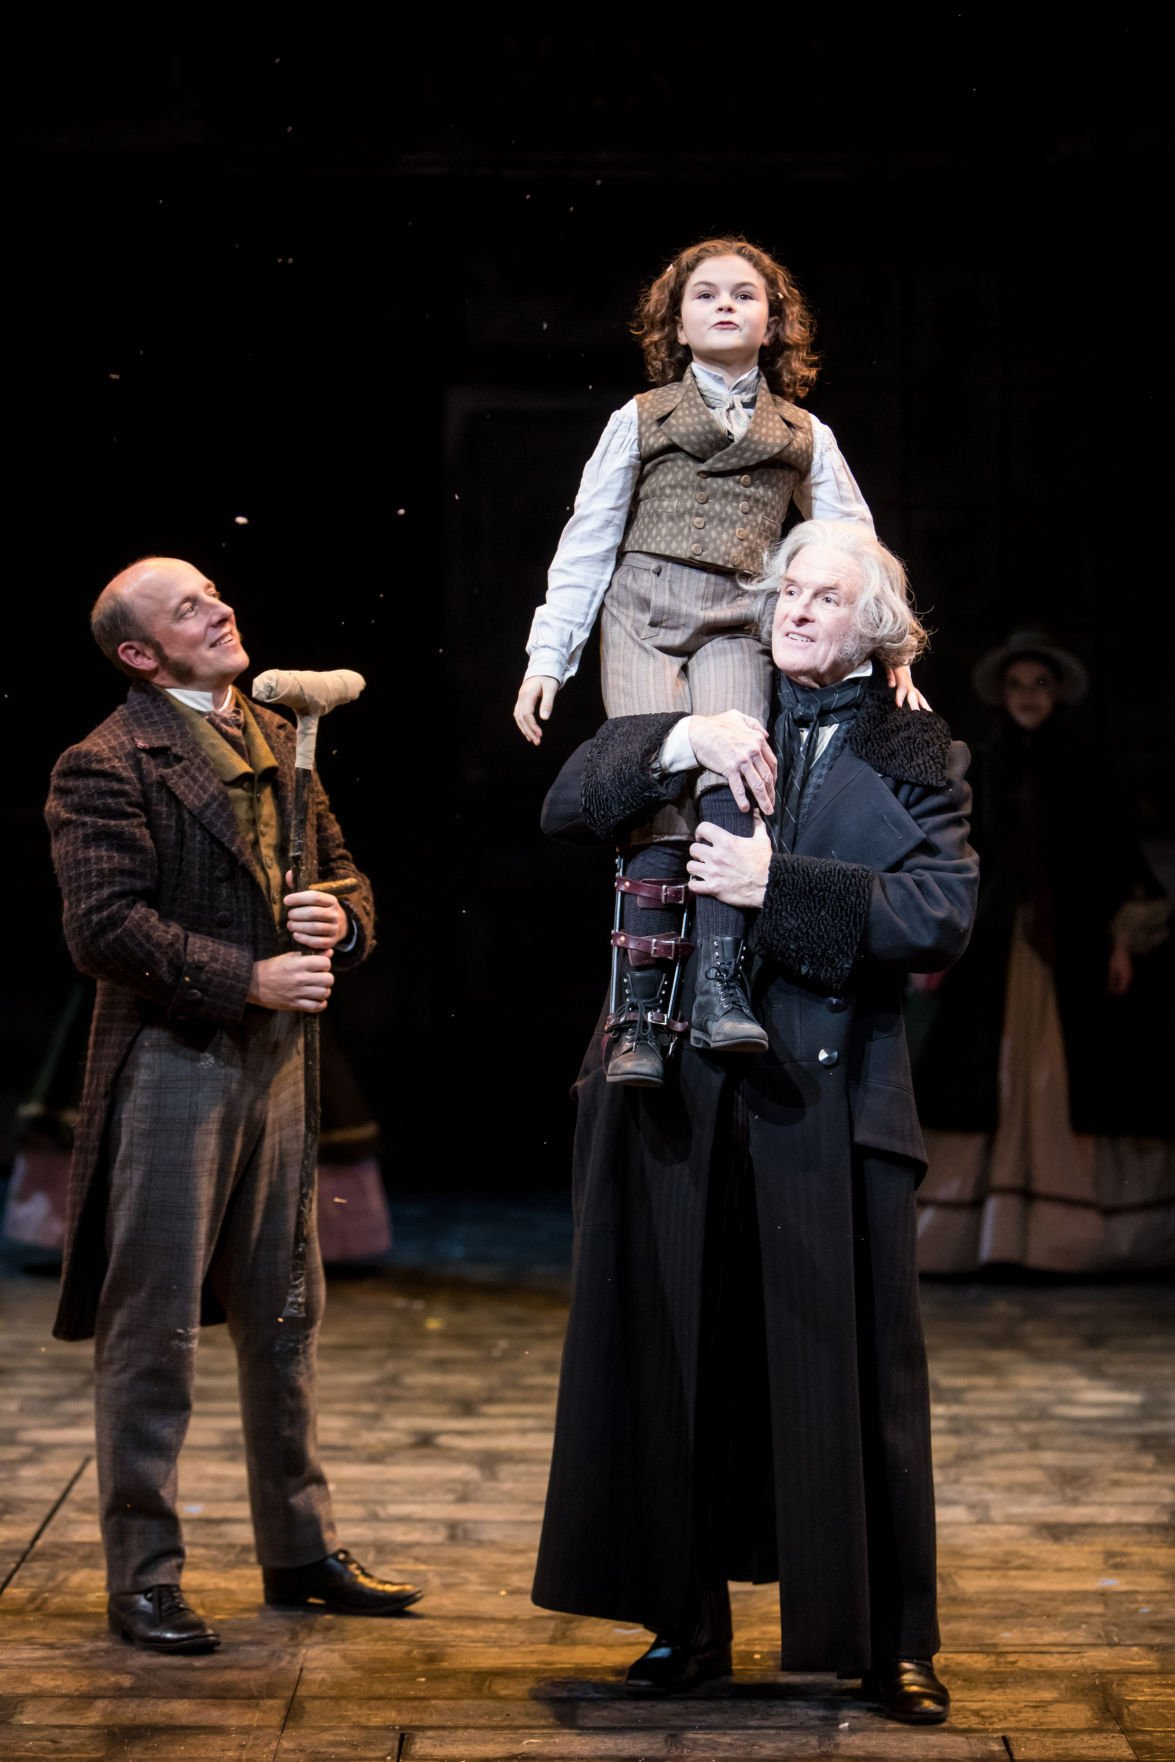 Tiny Tim A Christmas Carol.Guthrie Casts 10 Year Old Chaskan As Tiny Tim In A